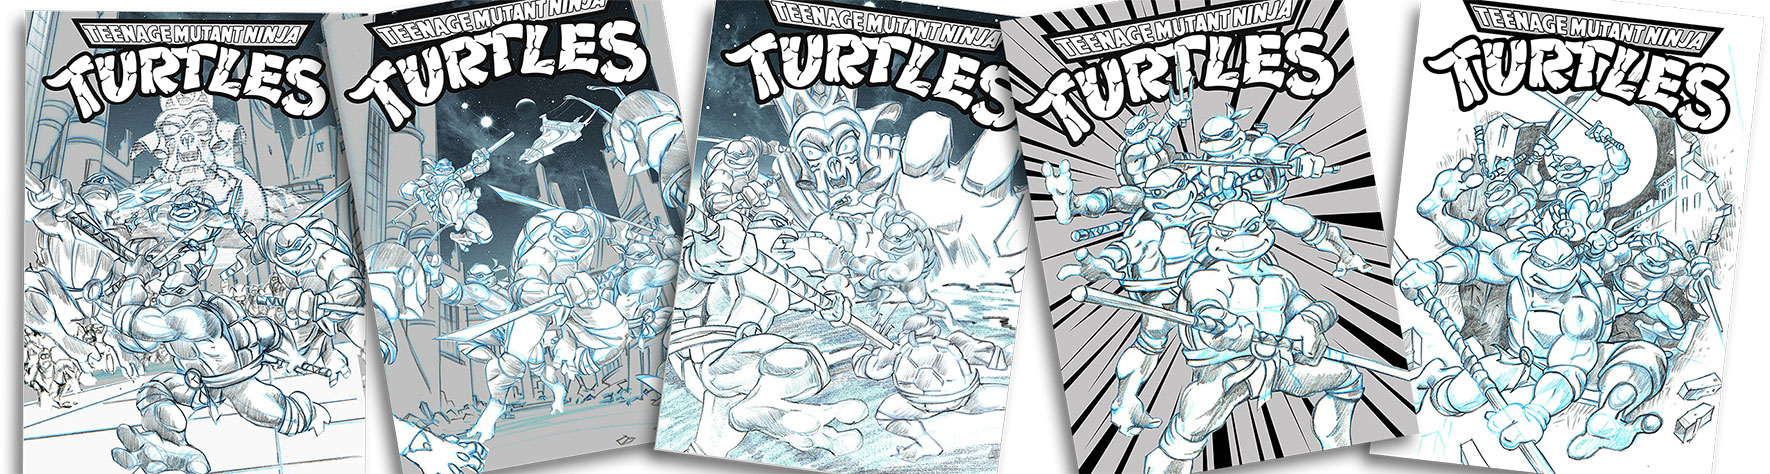 TMNT DVD Illustration  concept sketches